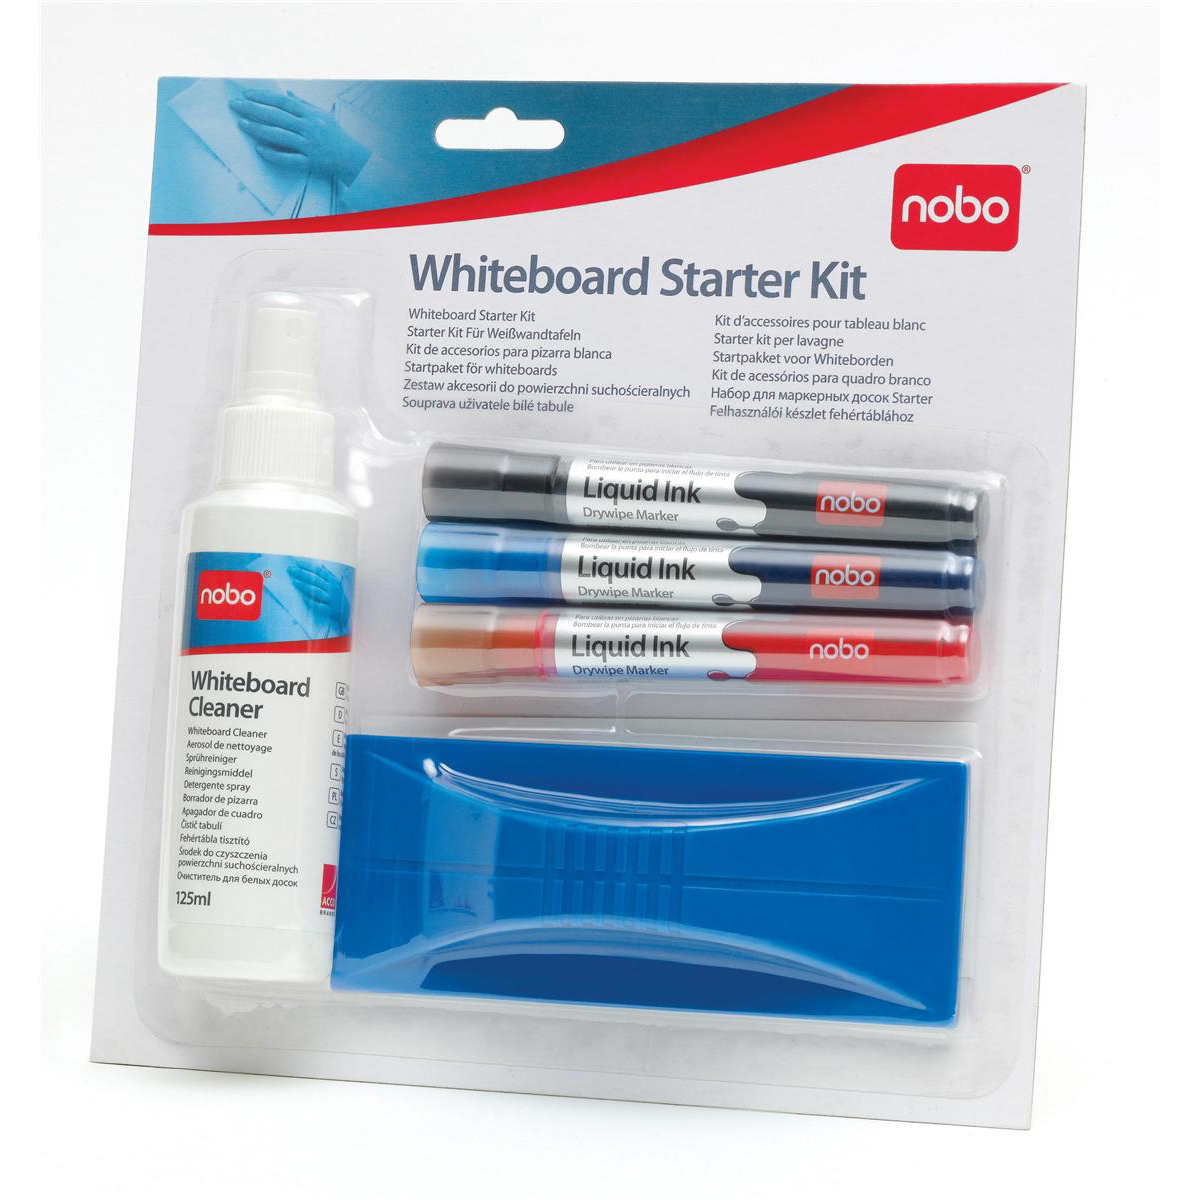 Chalk Markers Nobo Whiteboard Starter Kit 3 Asst Drywipe Markers/Eraser/Refills/125ml Cleaning Fluid Spray Ref 34438861